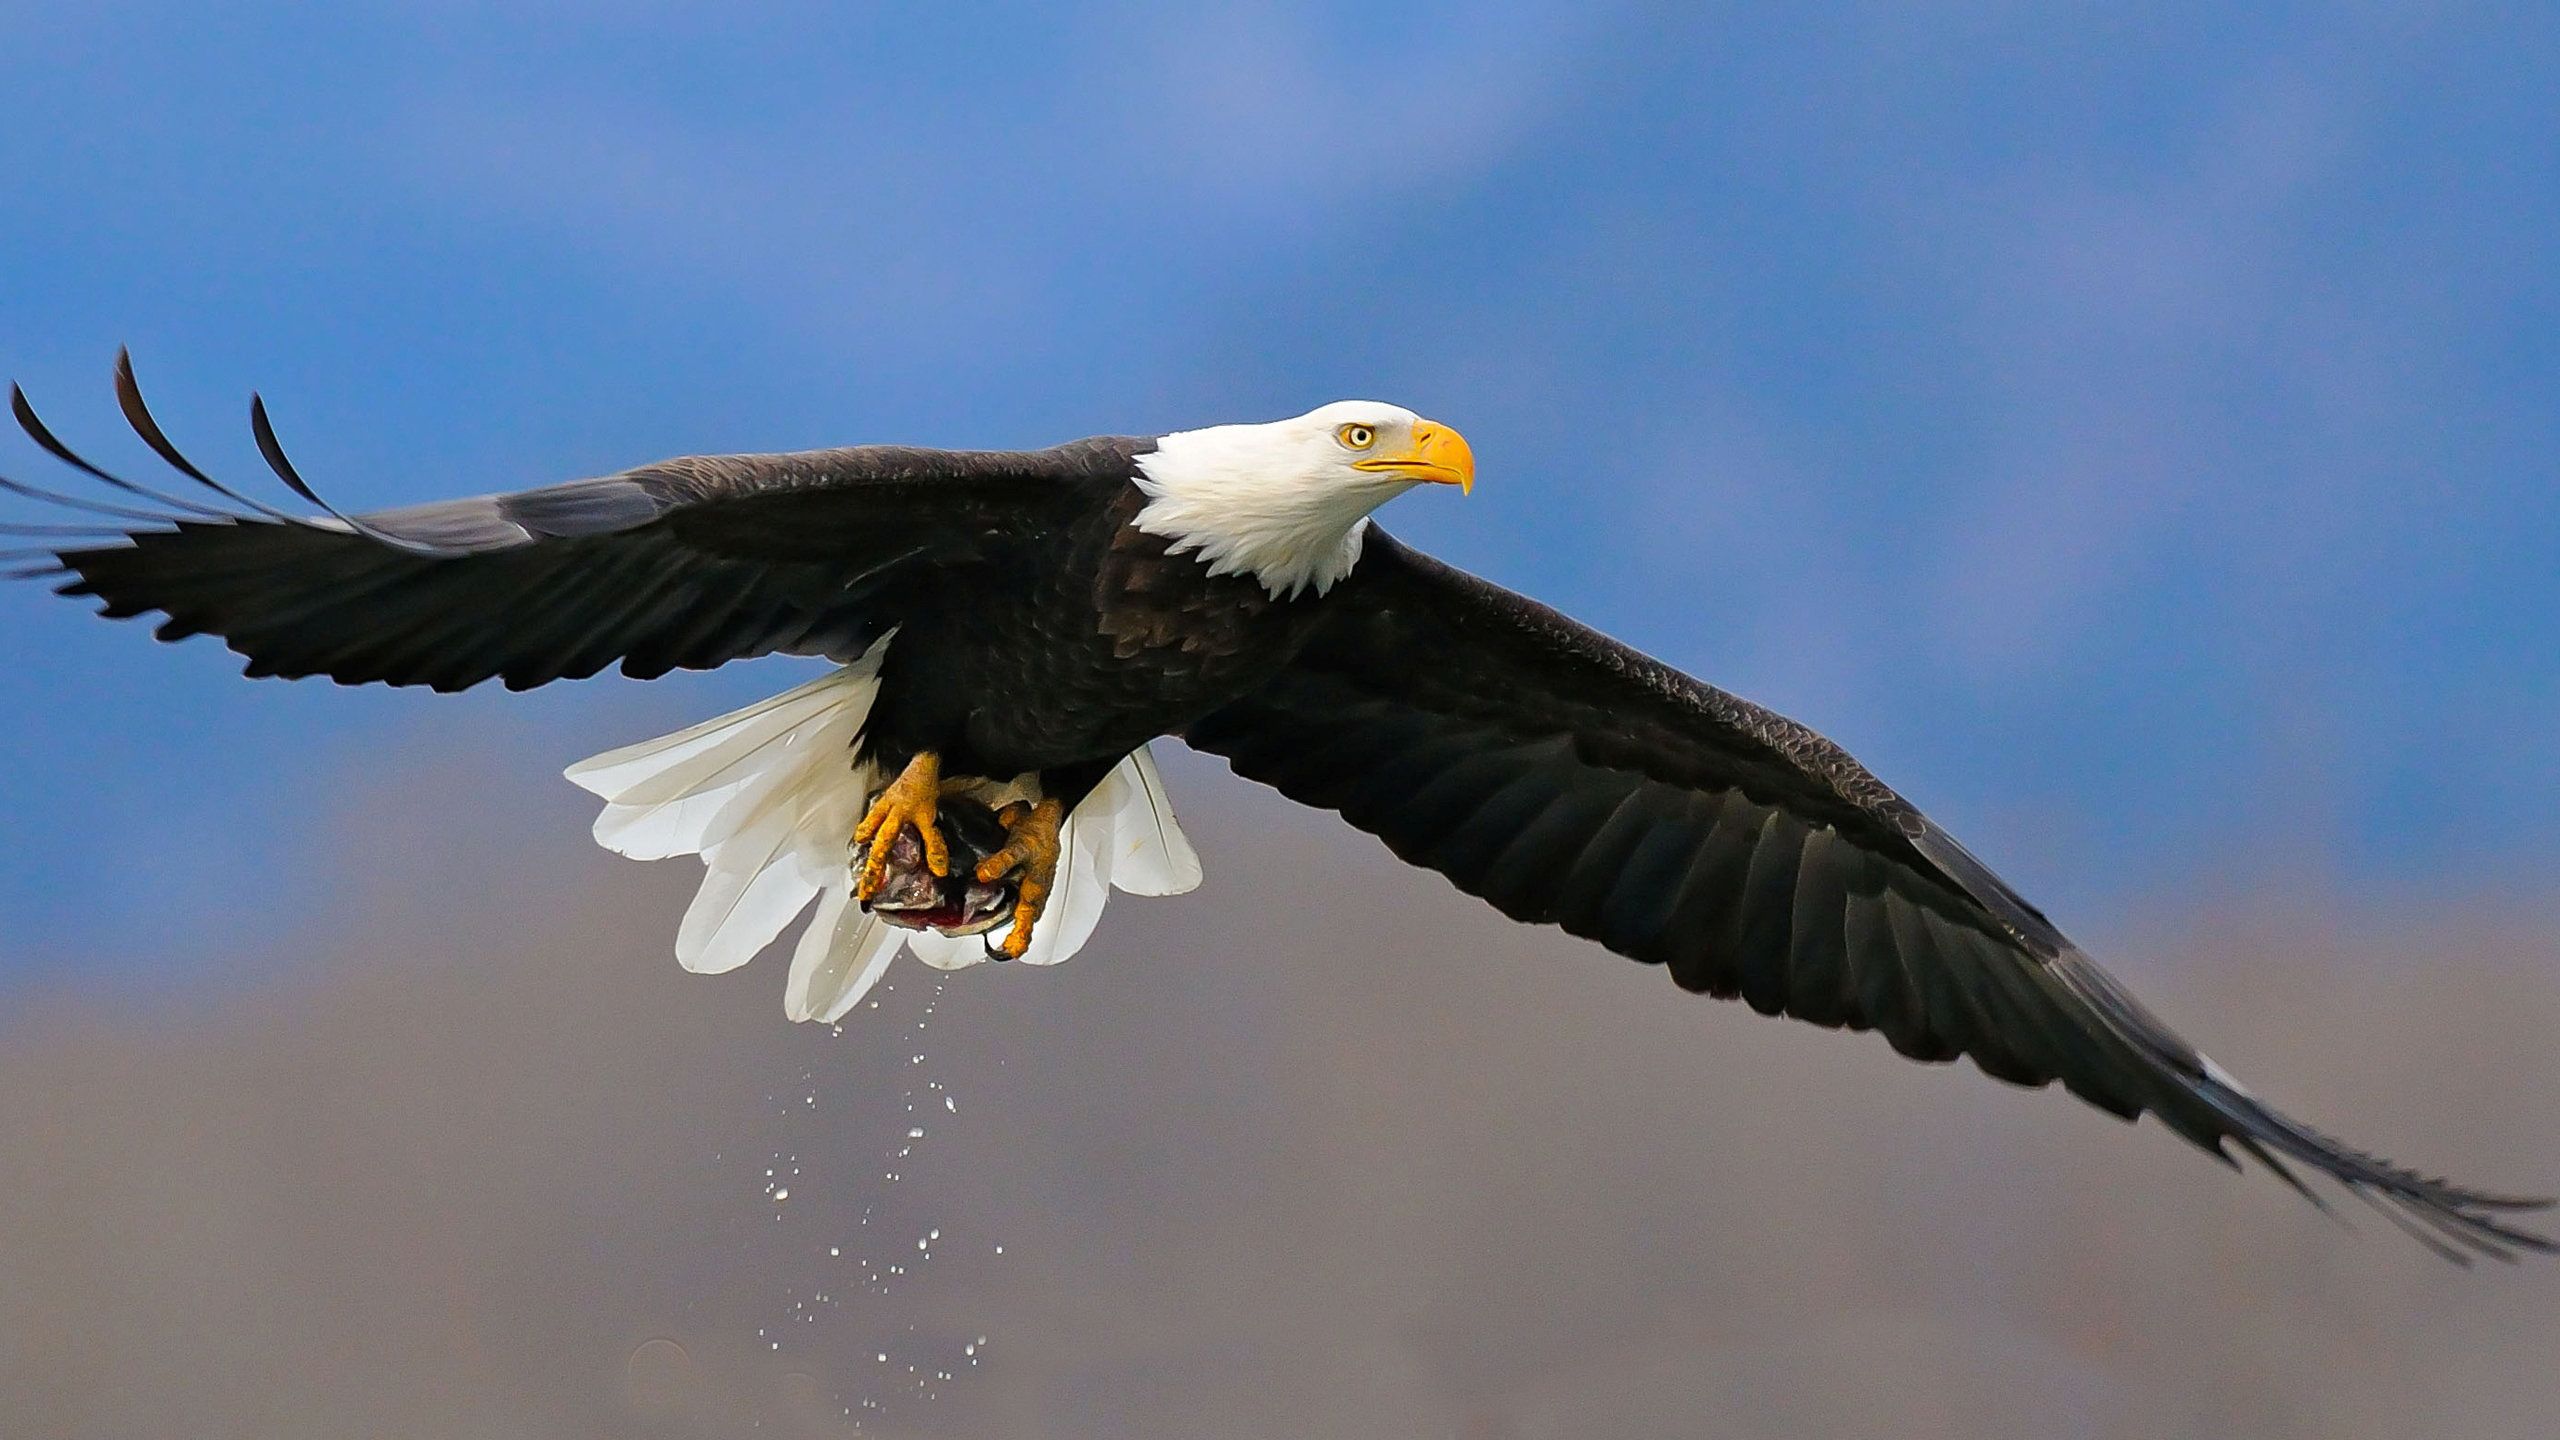 High resolution American Bald Eagle hd 2560x1440 background ID:68641 for PC